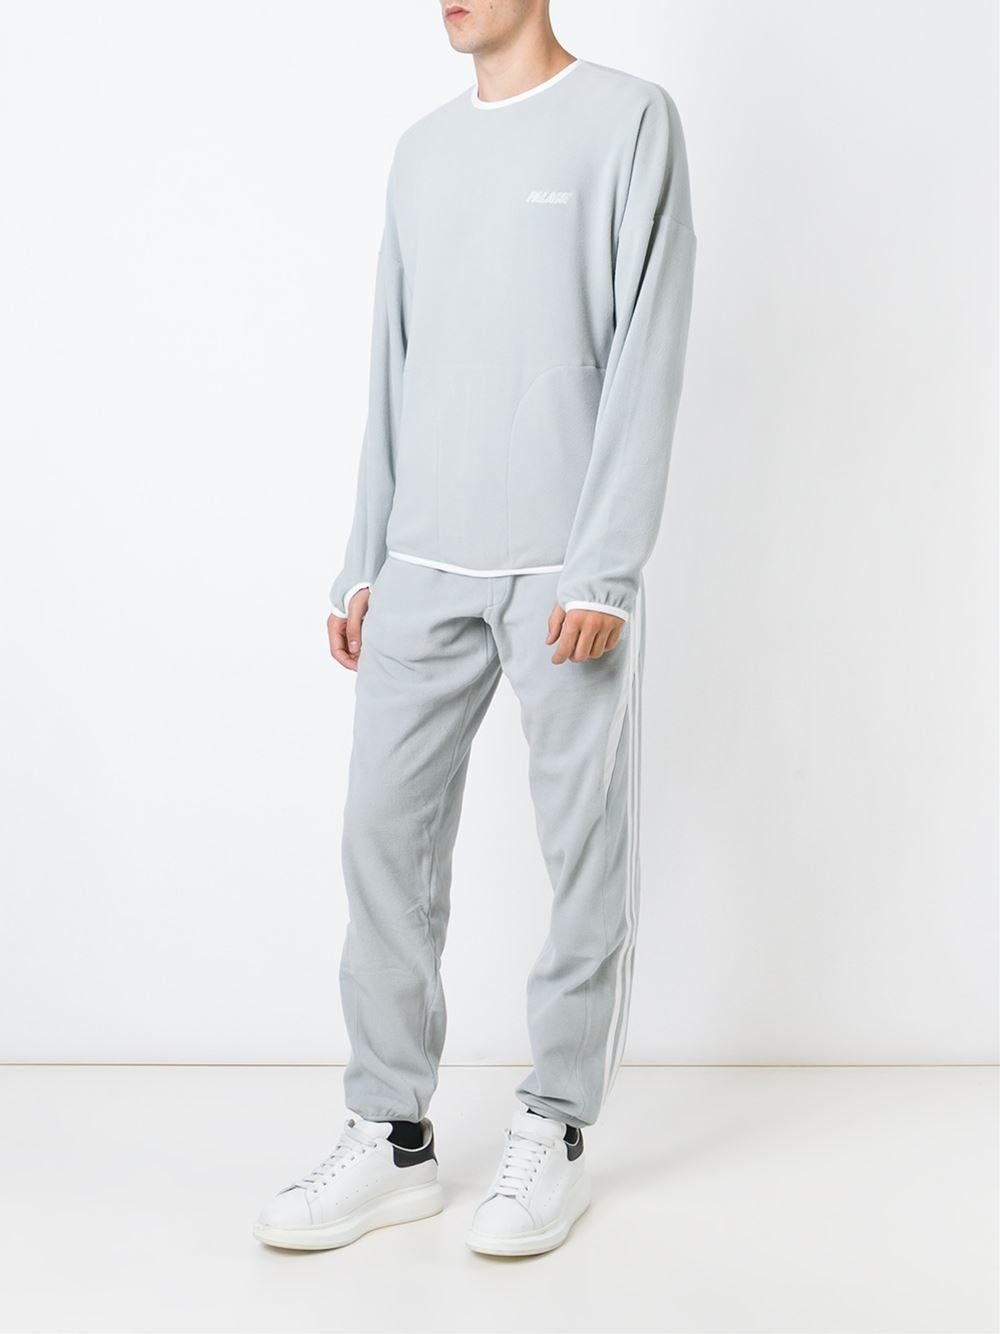 Luxury Lyst - Adidas Slim Grey Tracksuit Bottoms In Gray